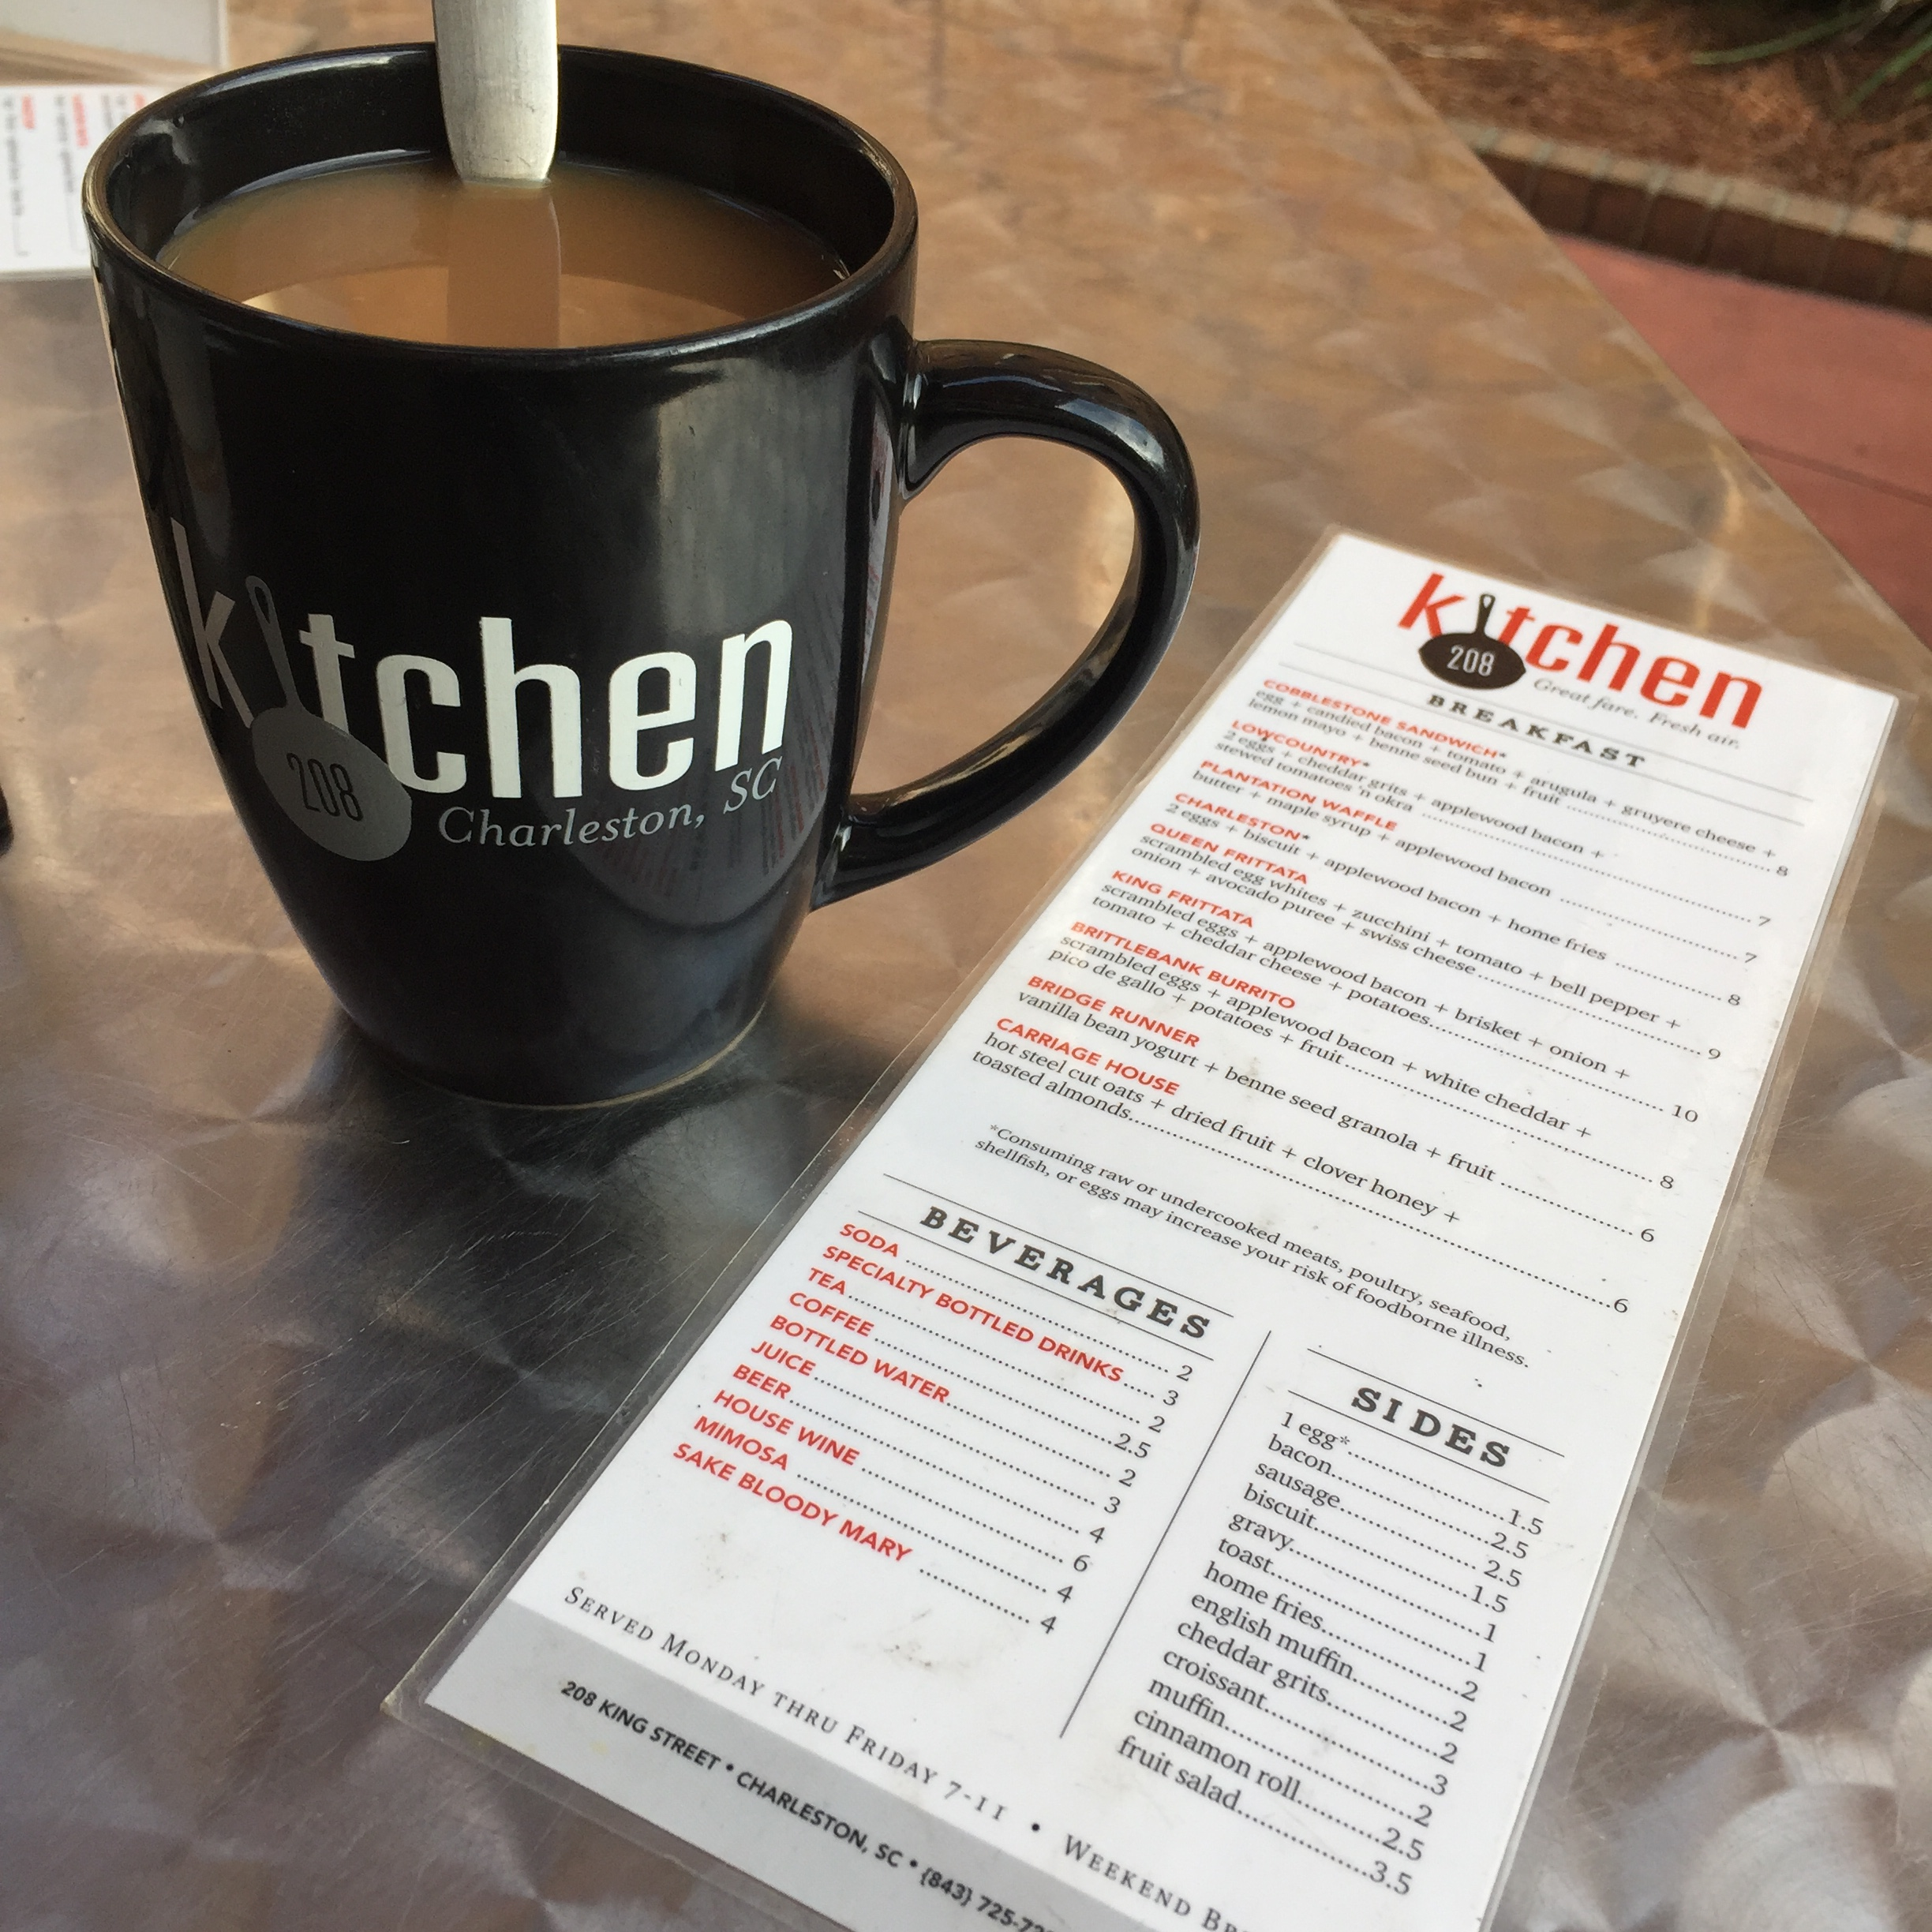 Kitchen 208 Charleston Menu and Cup of Coffee ShinewithJL